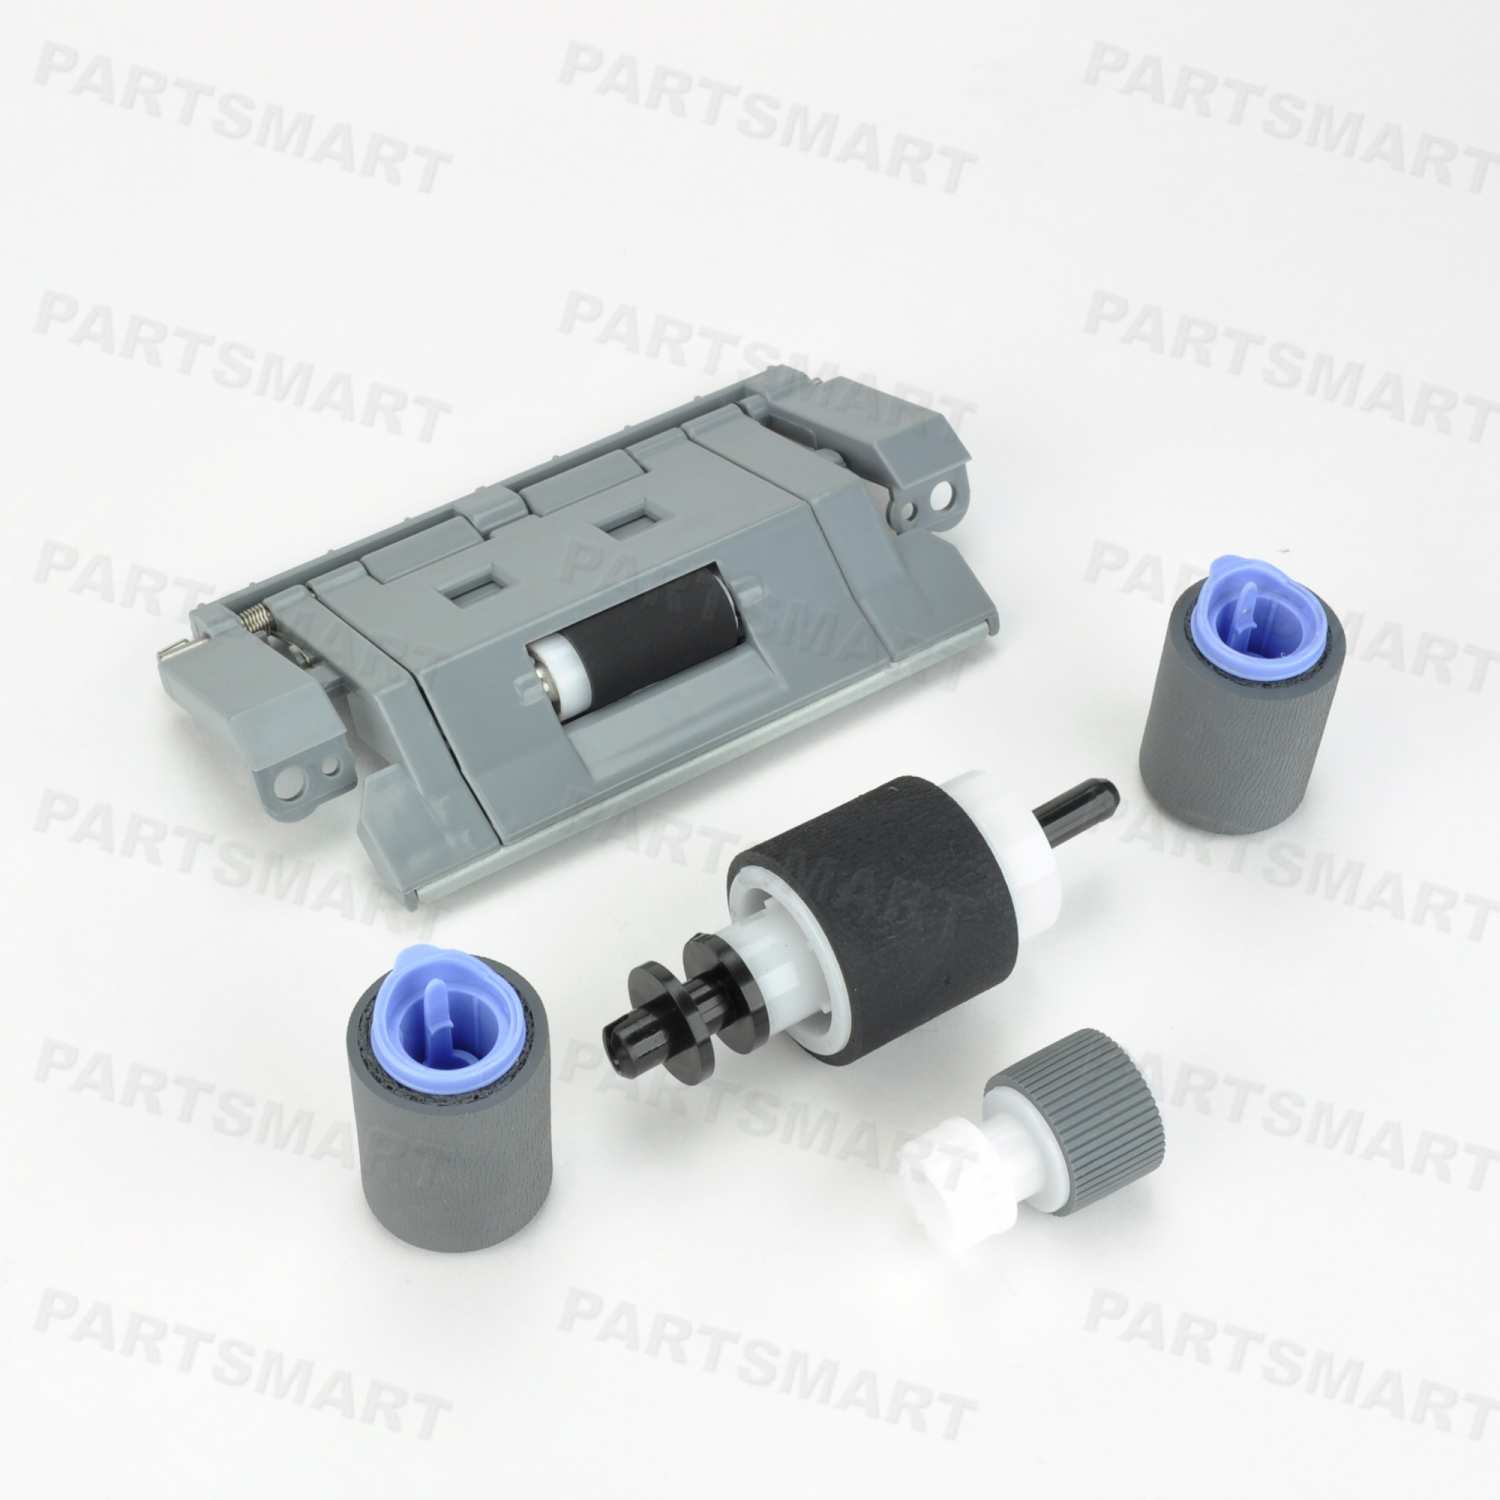 CC468-67924 Pick/Feed and Separation Pad Kit for HP Color LaserJet CP3525